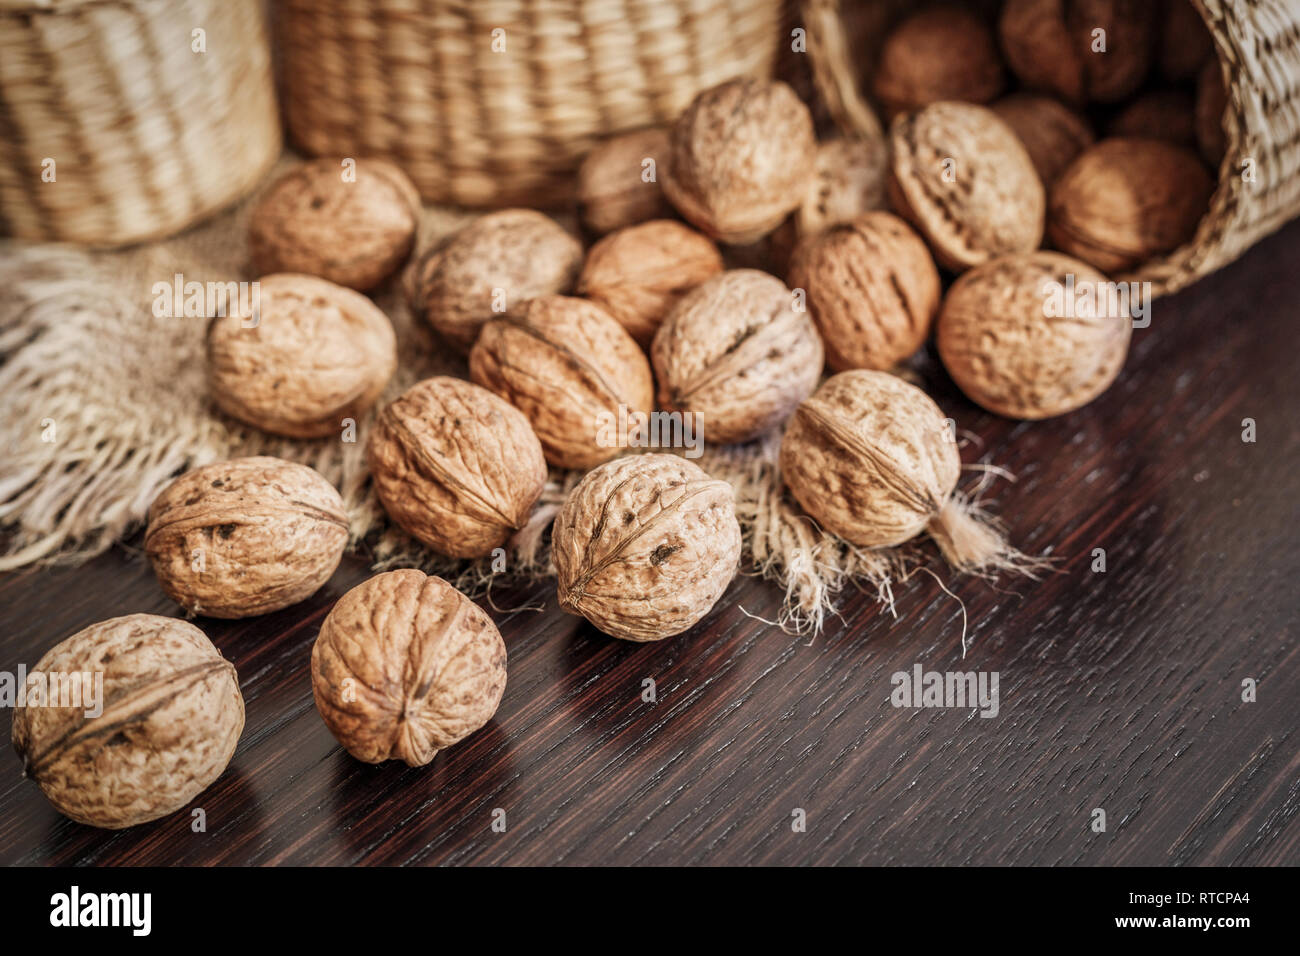 Close-up view of whole walnuts scattered on a dark wooden table with rustic background, selective focus. Healthy food concept. Stock Photo